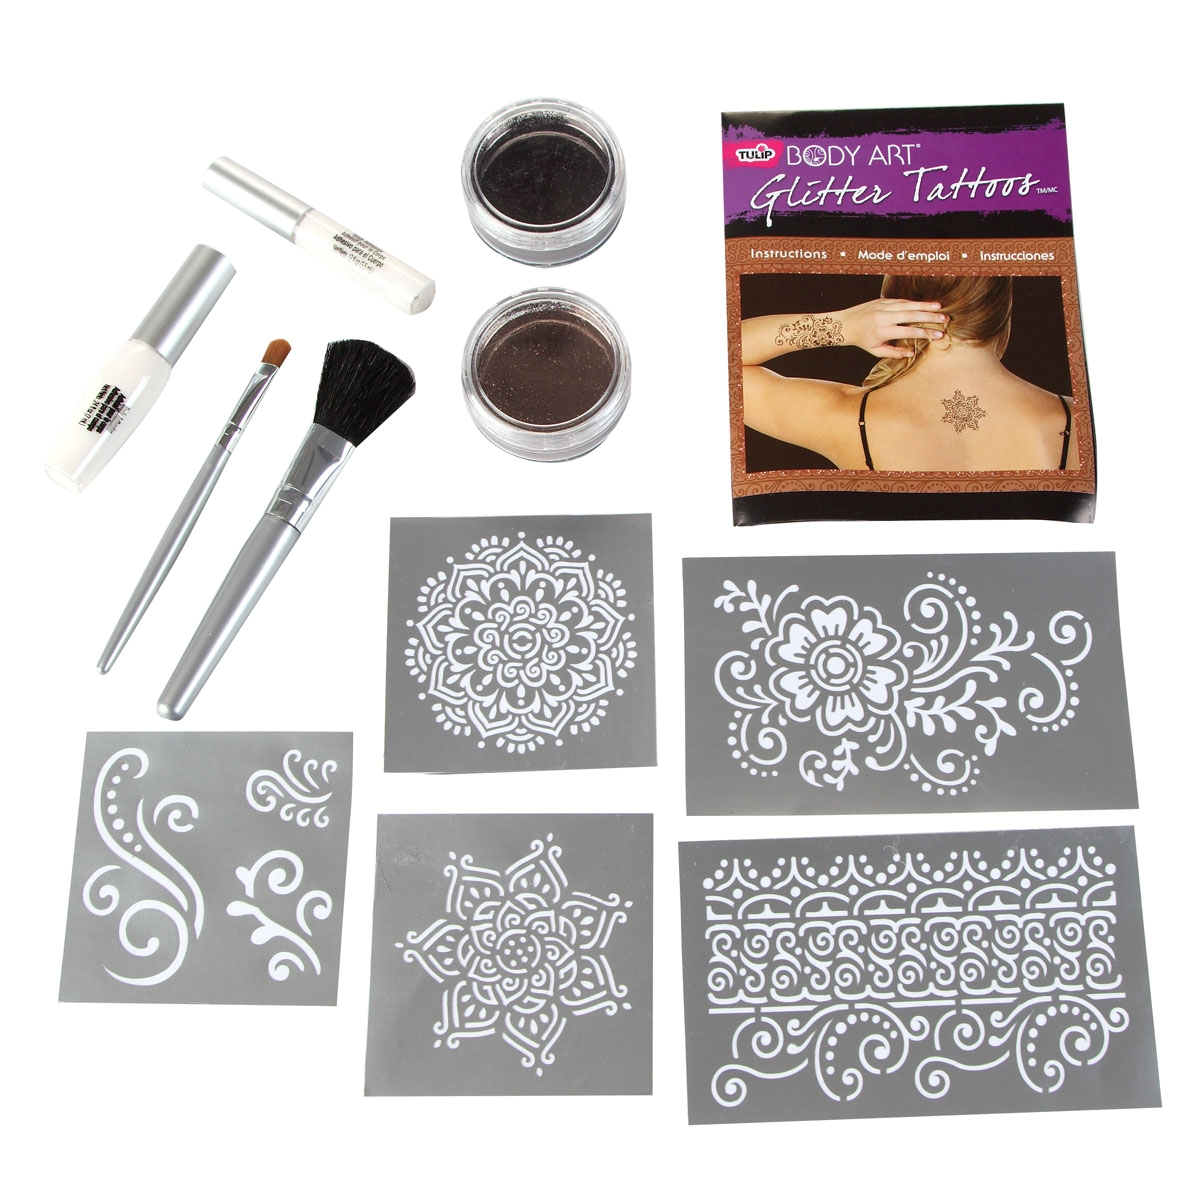 0046986_tulip-body-art-glitter-tattoo-kit-henna